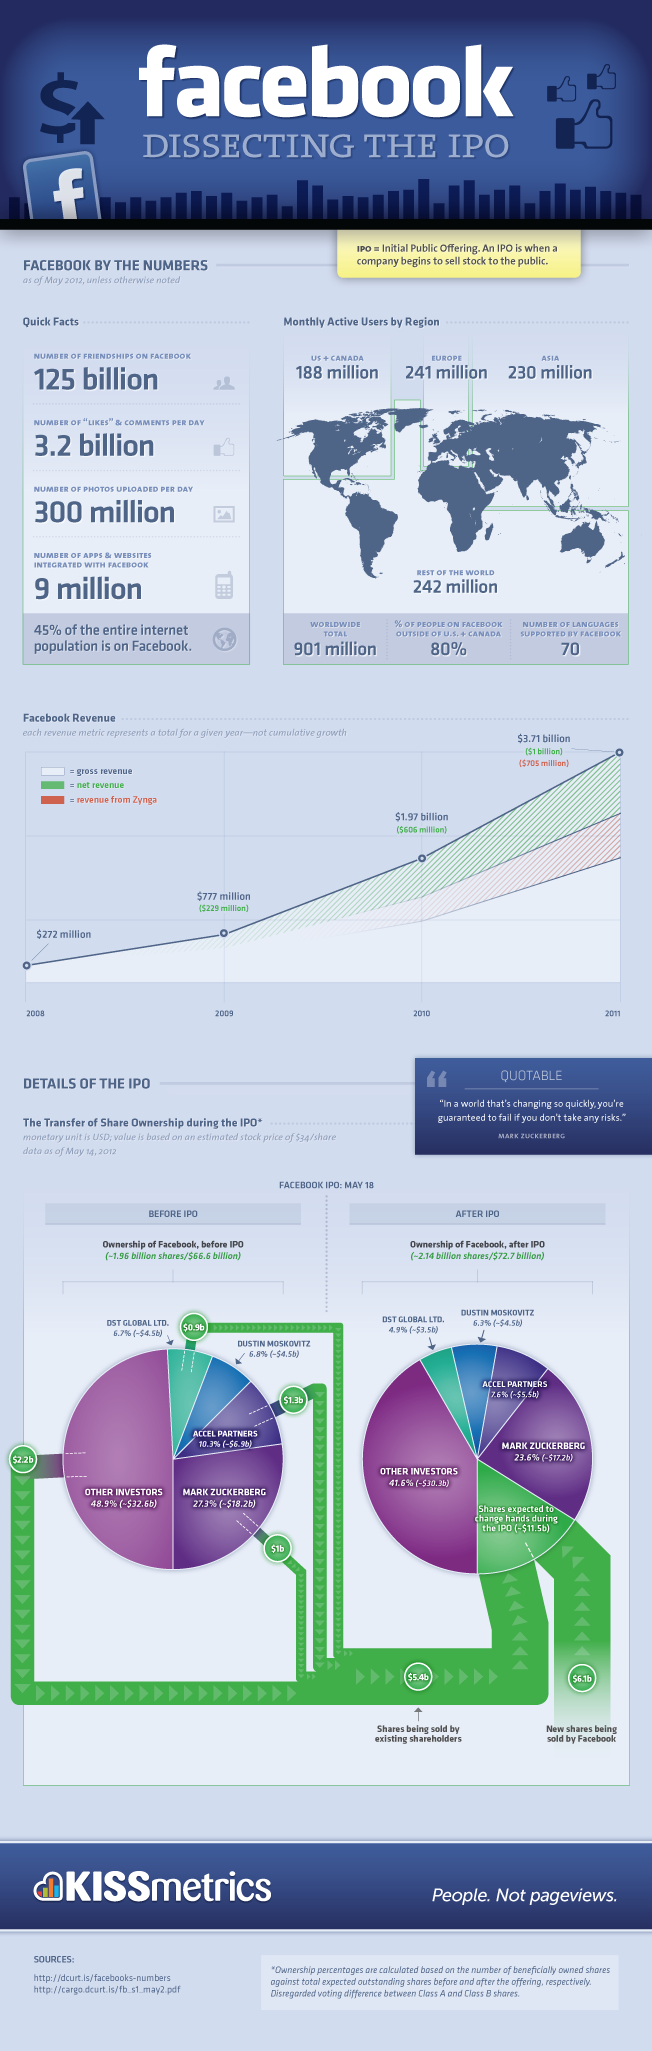 Facebook Dissecting The IPO Infographic